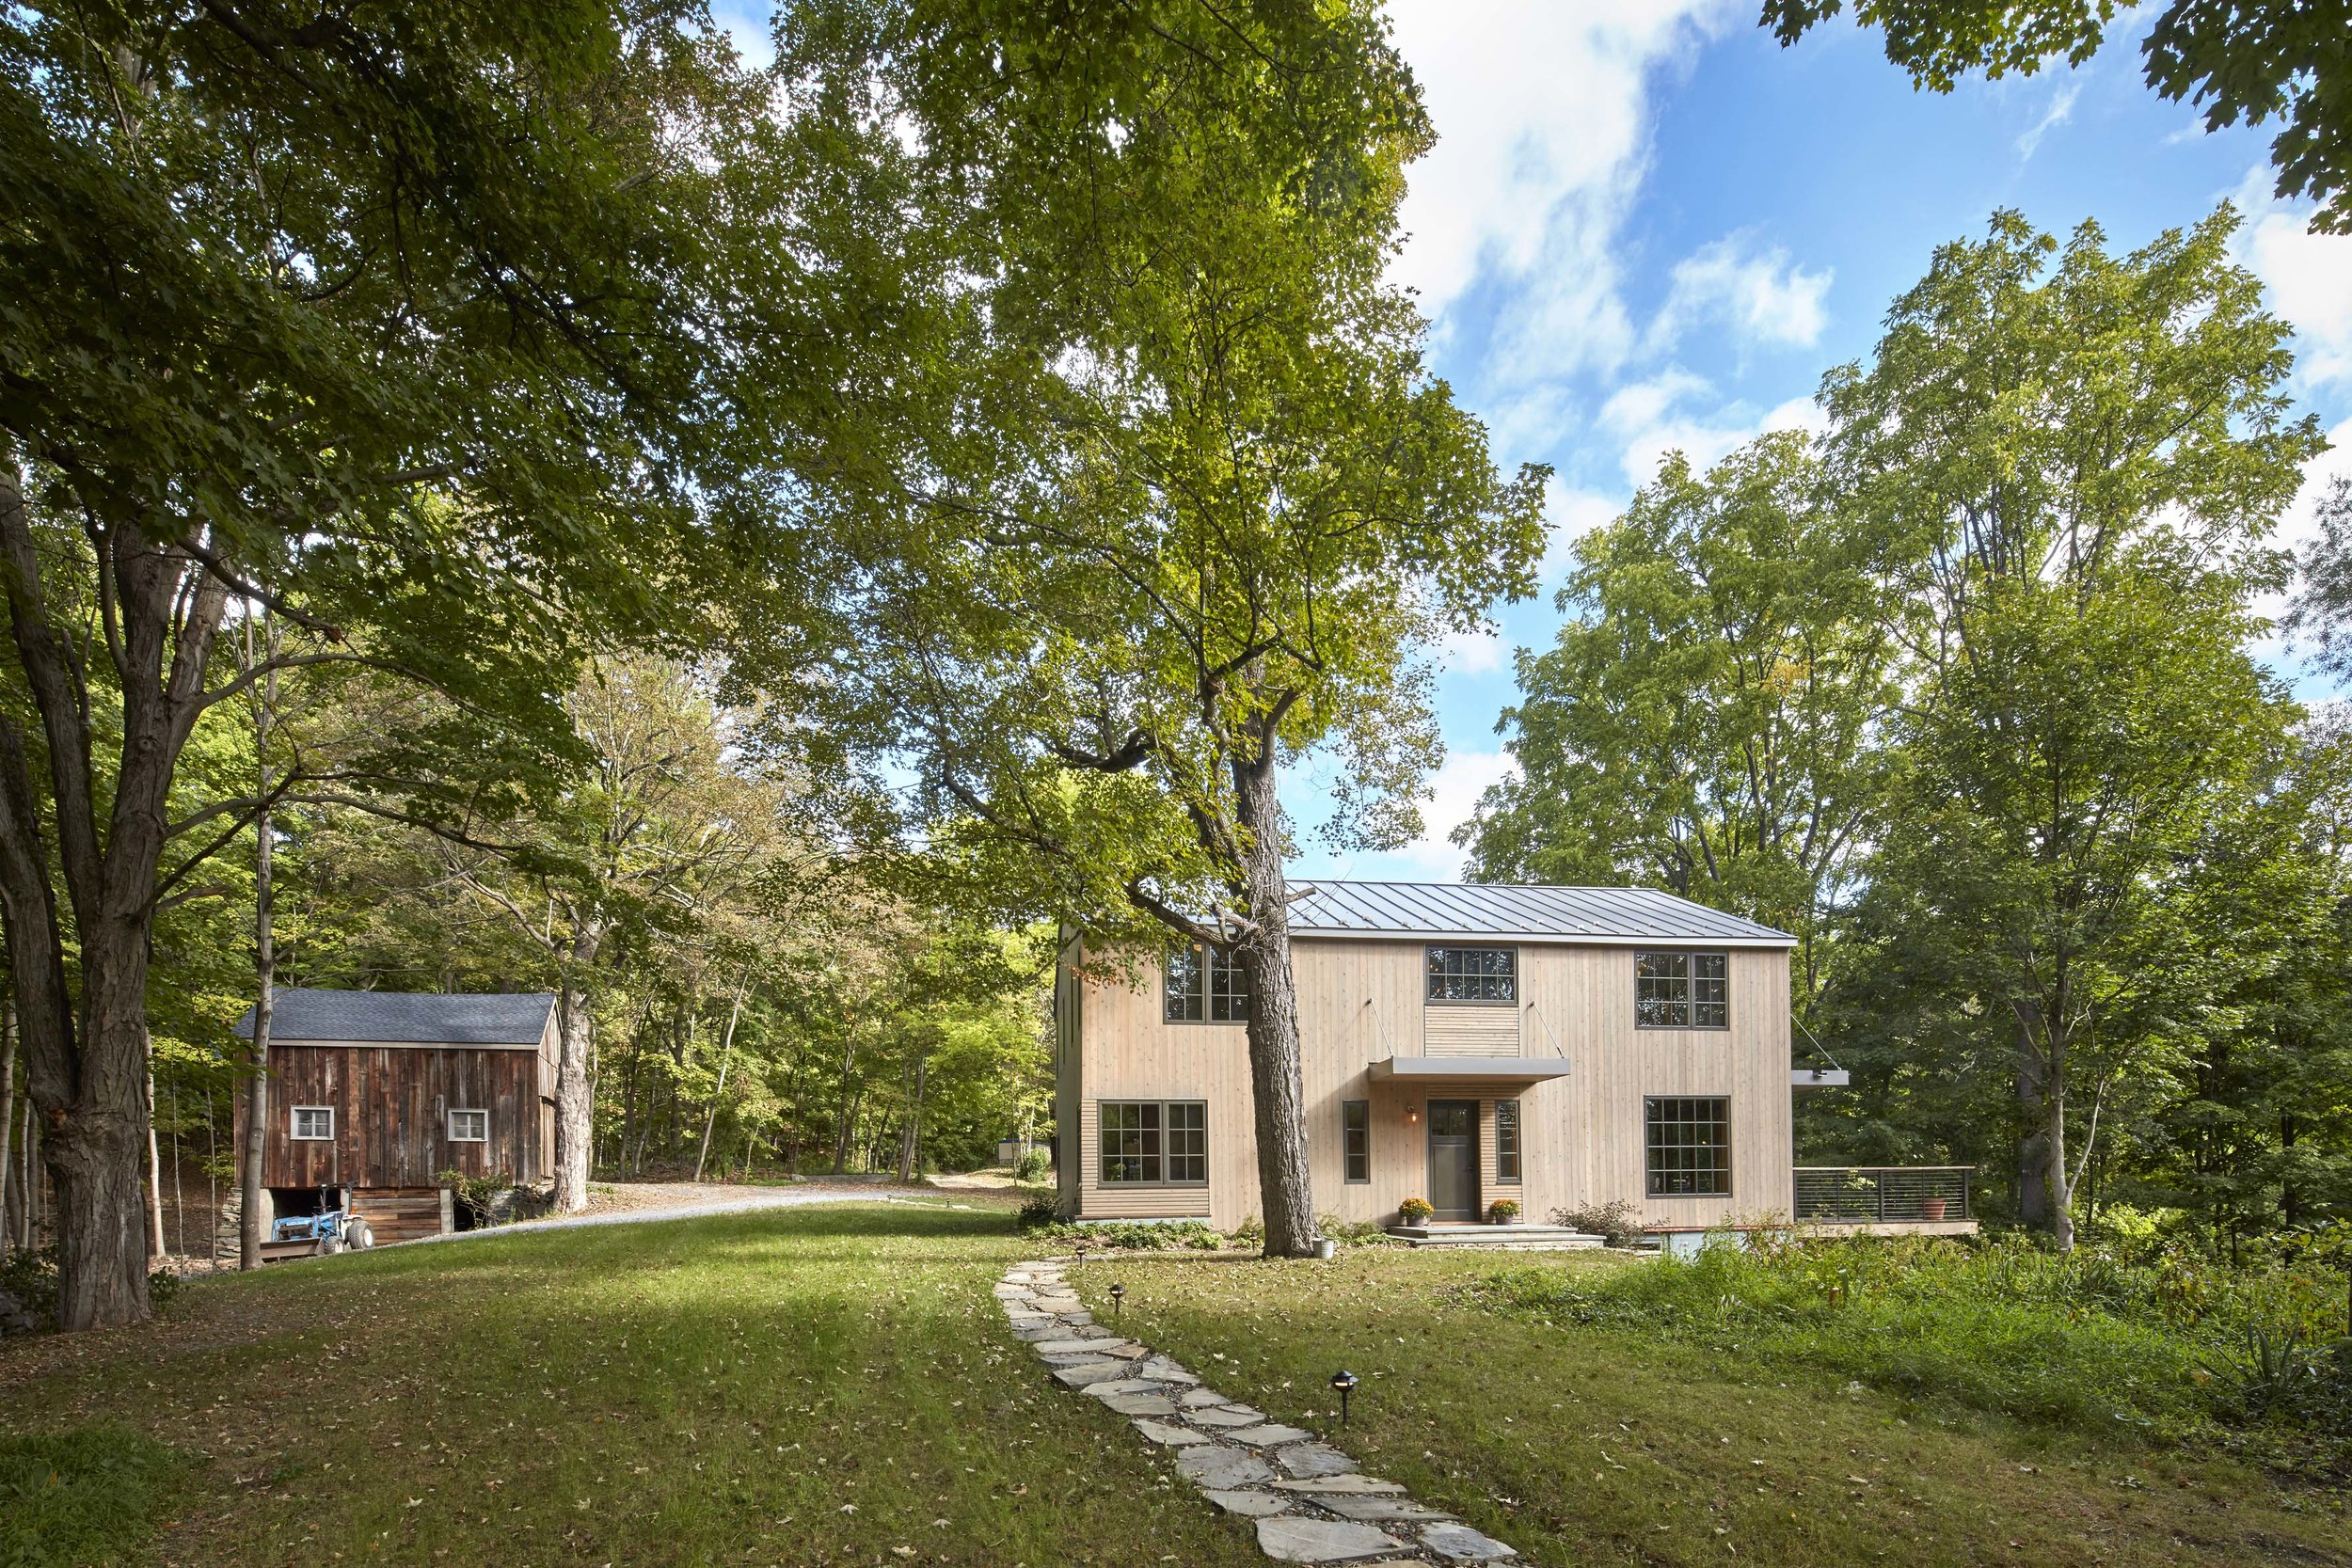 Fallkill Farm - Year: 2016Type: ResidentialLocation: Hyde Park, NYSquare Footage: 2,350Scope of Work: Architectural and Interior DesignAwards: New York Cottages and Gardens2017 Innovation in Design Award Winner,Architecture CategoryAn existing 1830's farmhouse located in historic Hyde Park, NY underwent a full-gut renovation to transform into a Rustic Modern retreat. A speculative project in collaboration with custom-home builder, Wolcott Builders, the two-story house sits on 36 acres and is surrounded by three large barns and a pond.The main goal of the project was to retain the house's historical elements such as exposed timber members and a stone hearth, which was built by the original owner with help from his children. In order to do so, we added modern details and amenities, incorporated purposeful elements and provided outdoor views of the beautiful property while maintaining the farmhouse vernacular. The result is a historic yet modern home that complements the surrounding structures.